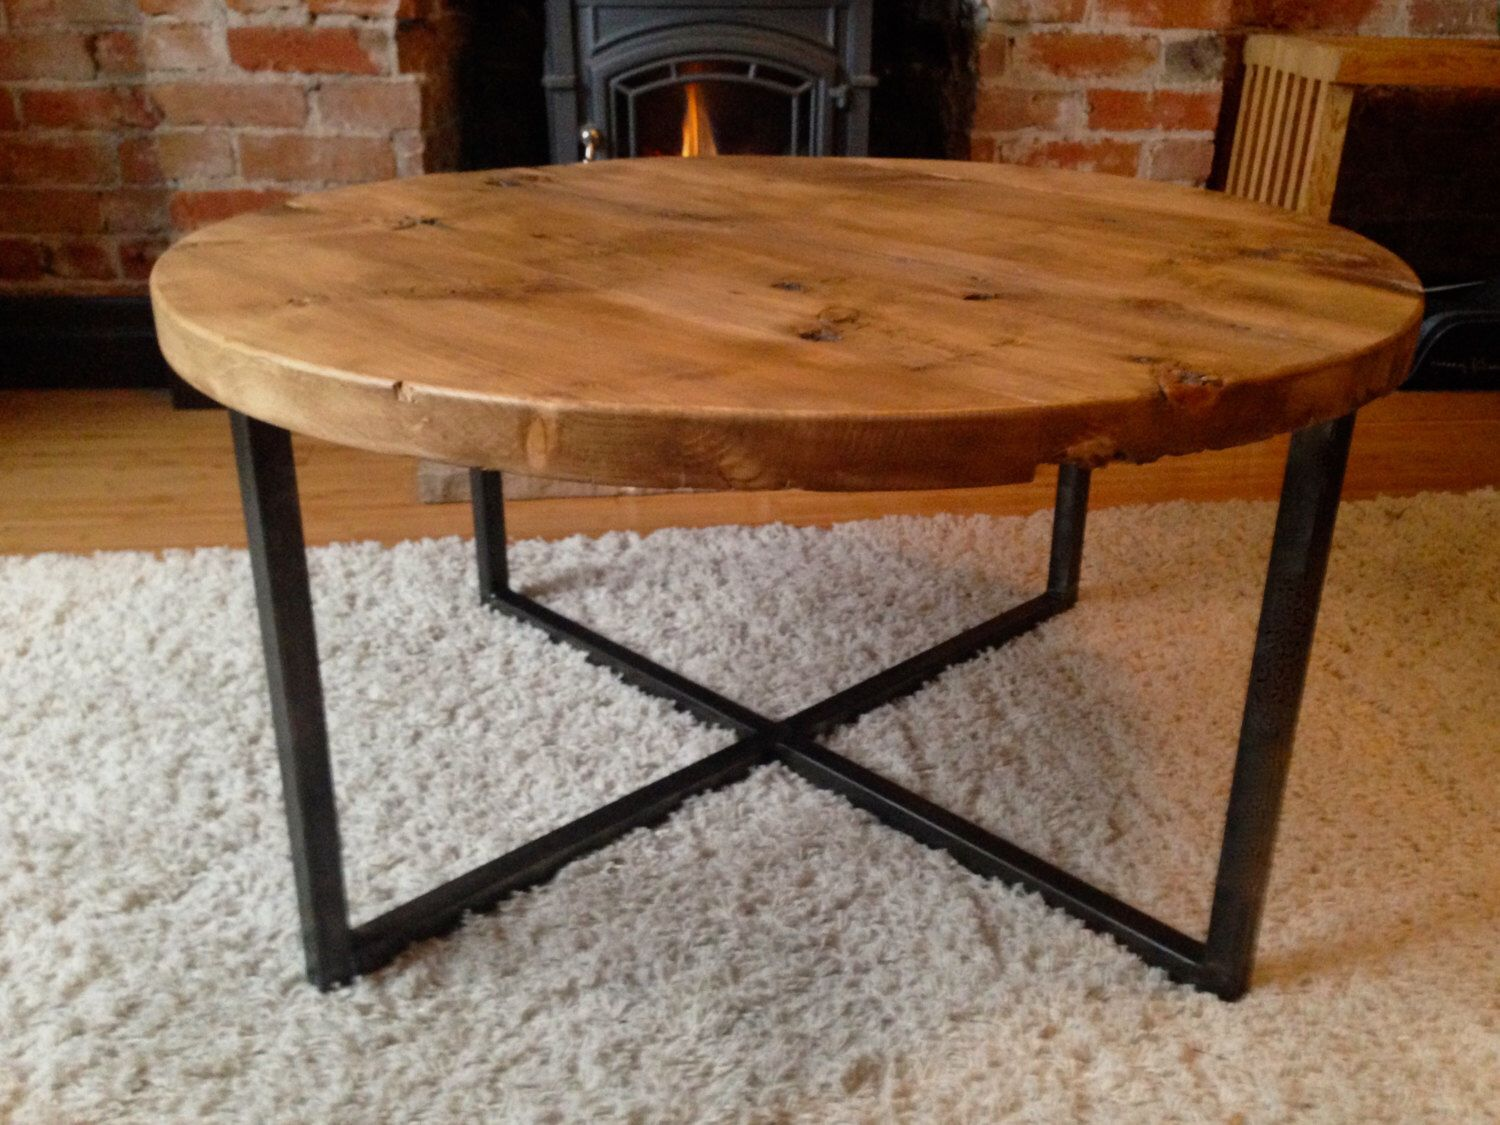 Reclaimed Barn Wood Round Coffee Table With Metal Base Table Basse Bois Metal Table Basse Ronde Table Basse Bois